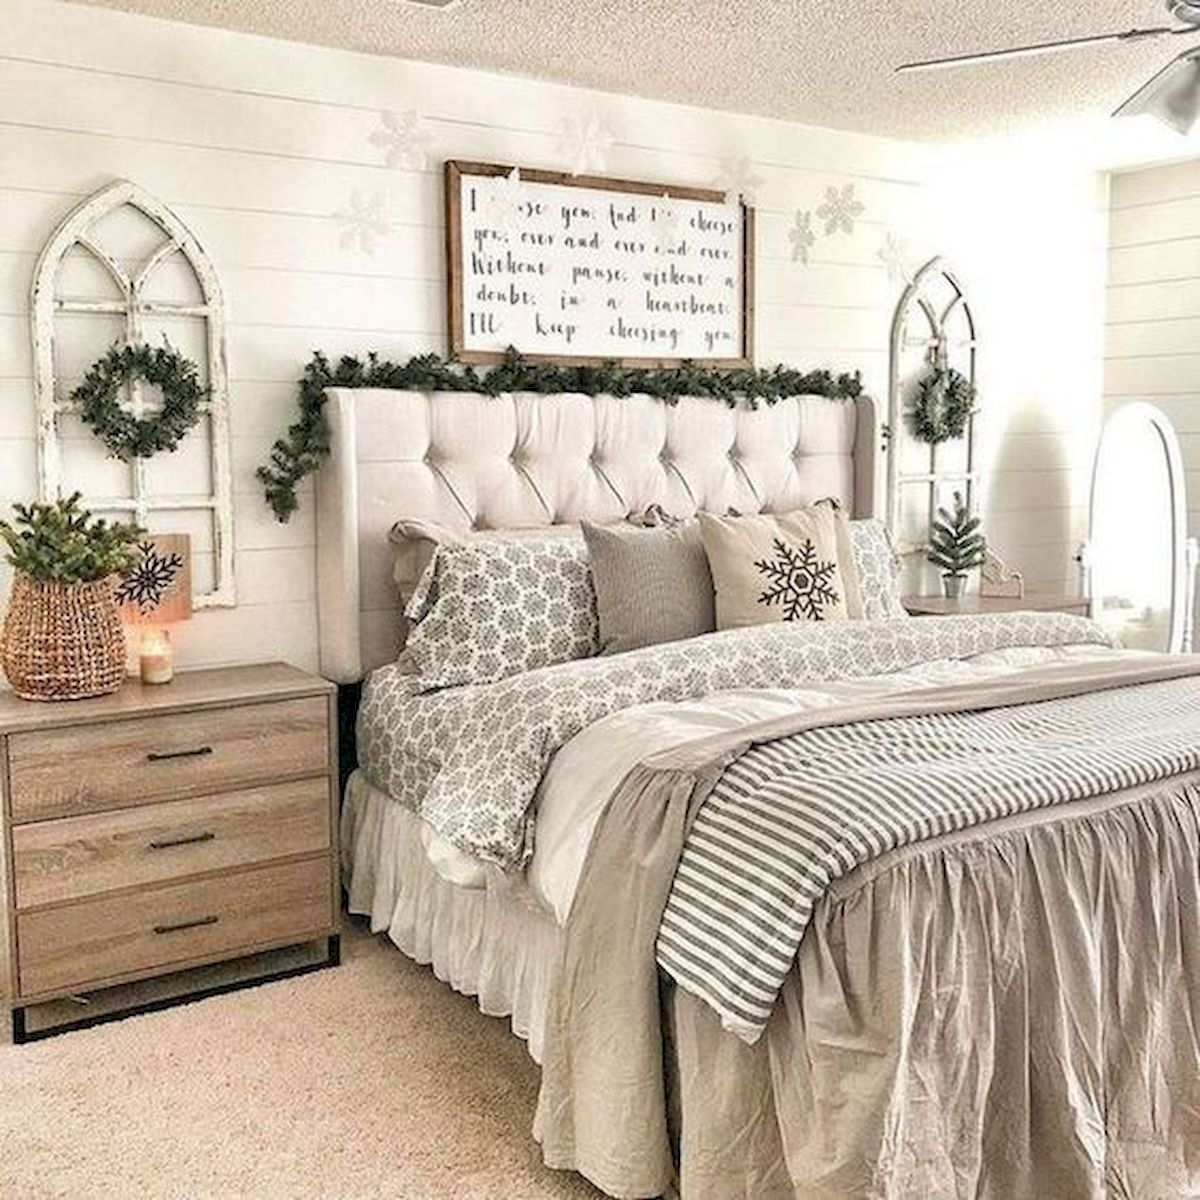 52 Awesome Wall Decor Ideas For Bedroom Rustic Master Bedroom Remodel Bedroom Farmhouse Bedroom Decor